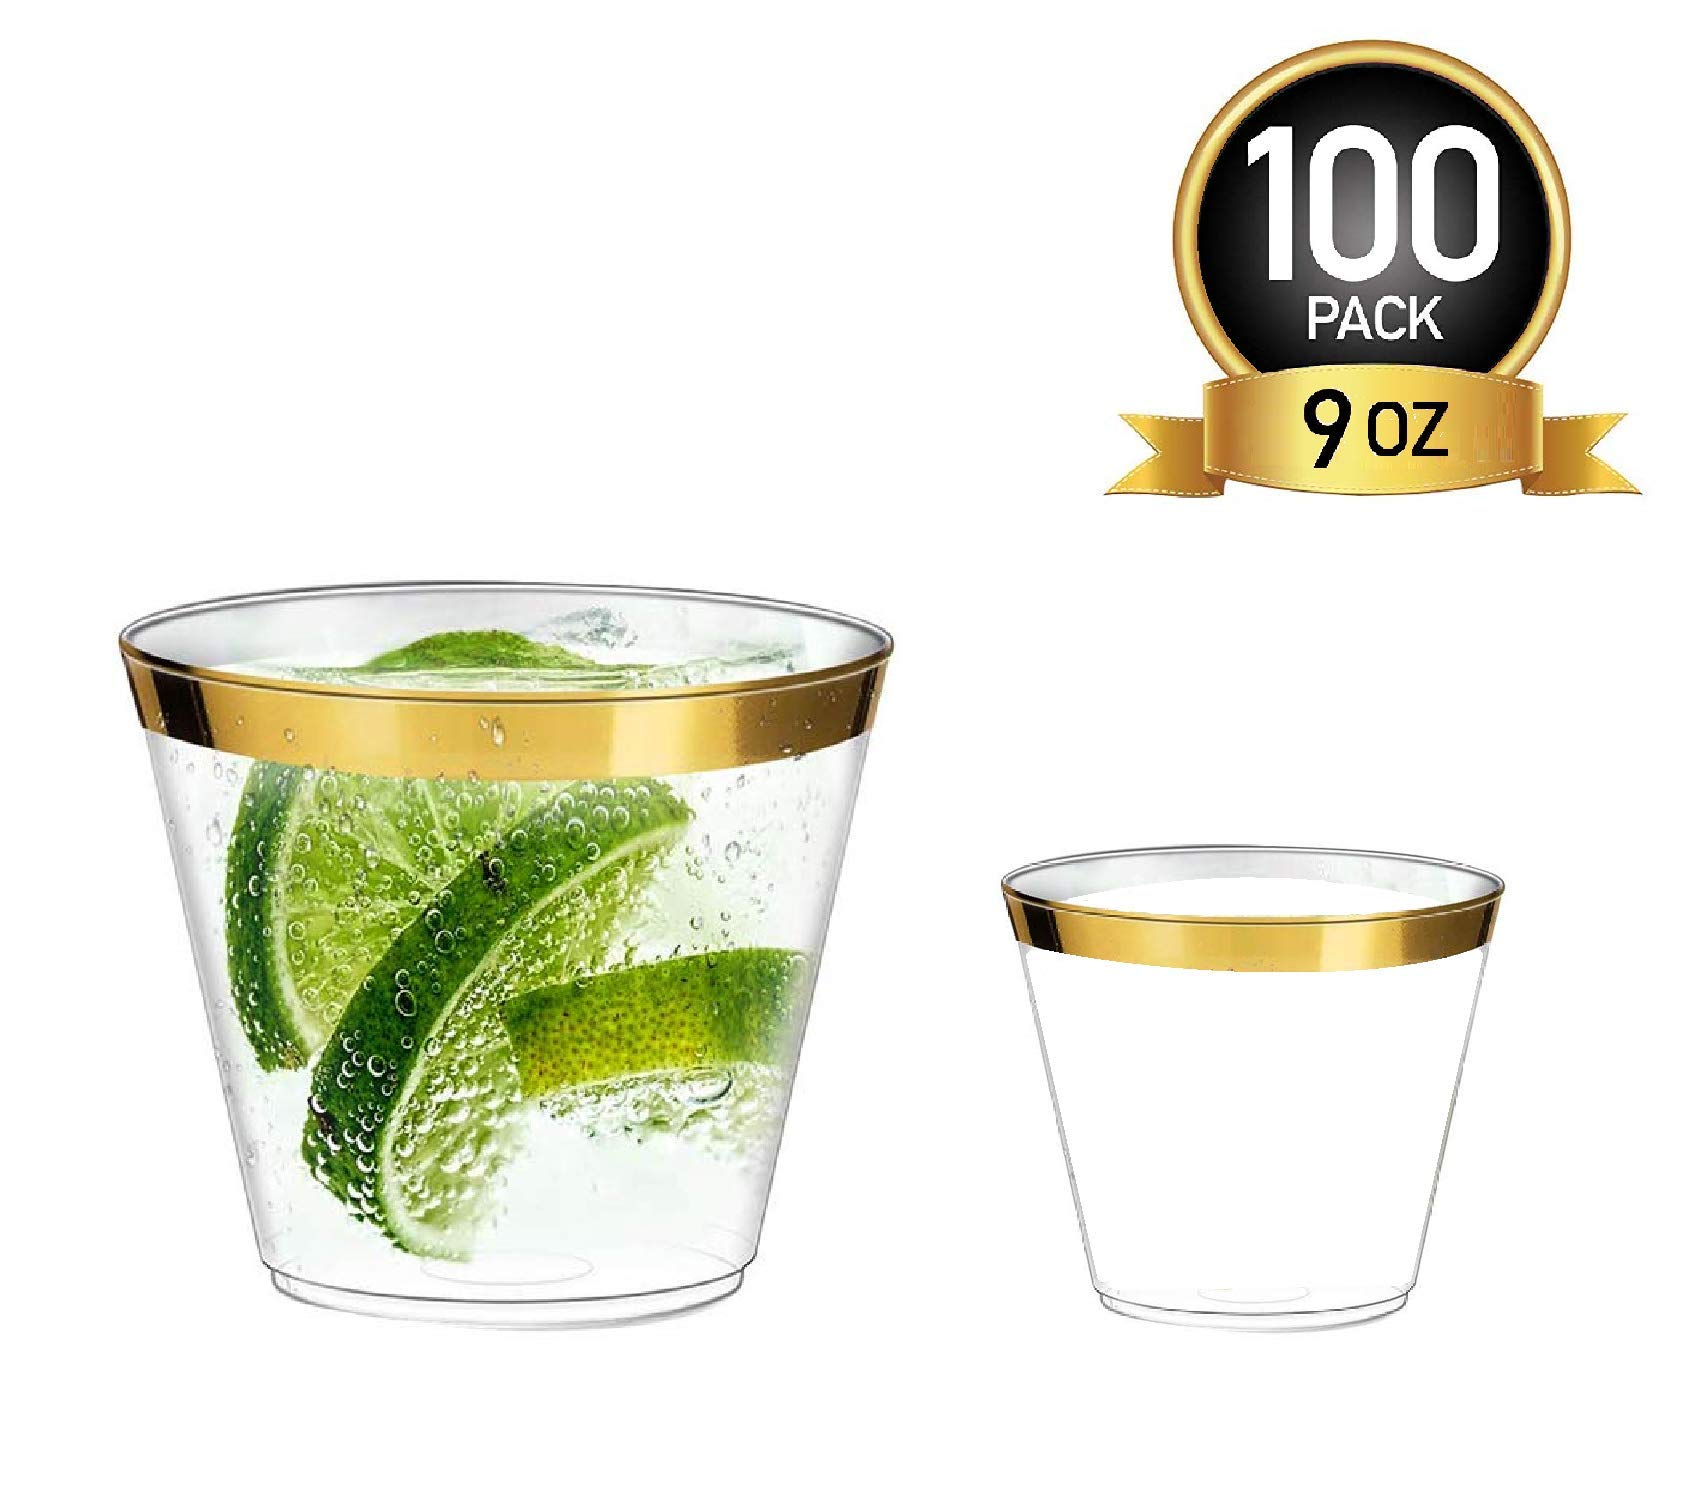 100 Gold Lined Plastic Clear Cups 9oz   Bonus 5oz Cups  Disposable Tumbler Cups for Wine or Champagne  Fancy Elegant Party Cups for Decoration & Weddings (Gold Rim) by Infinity on Clouds